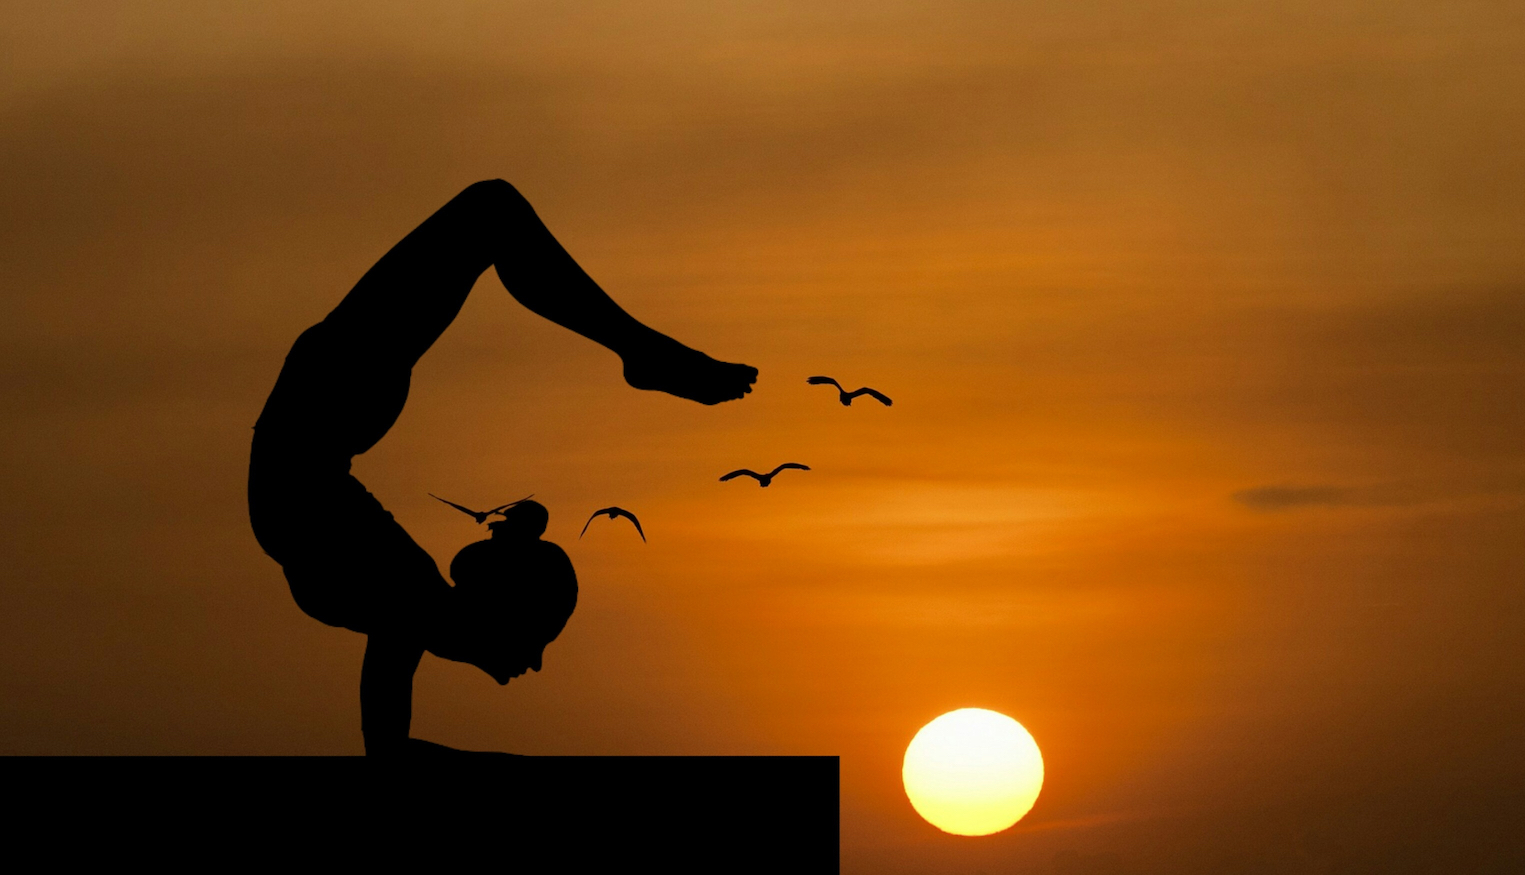 Canva - Silhouette of a Woman Doing a Yoga Pose